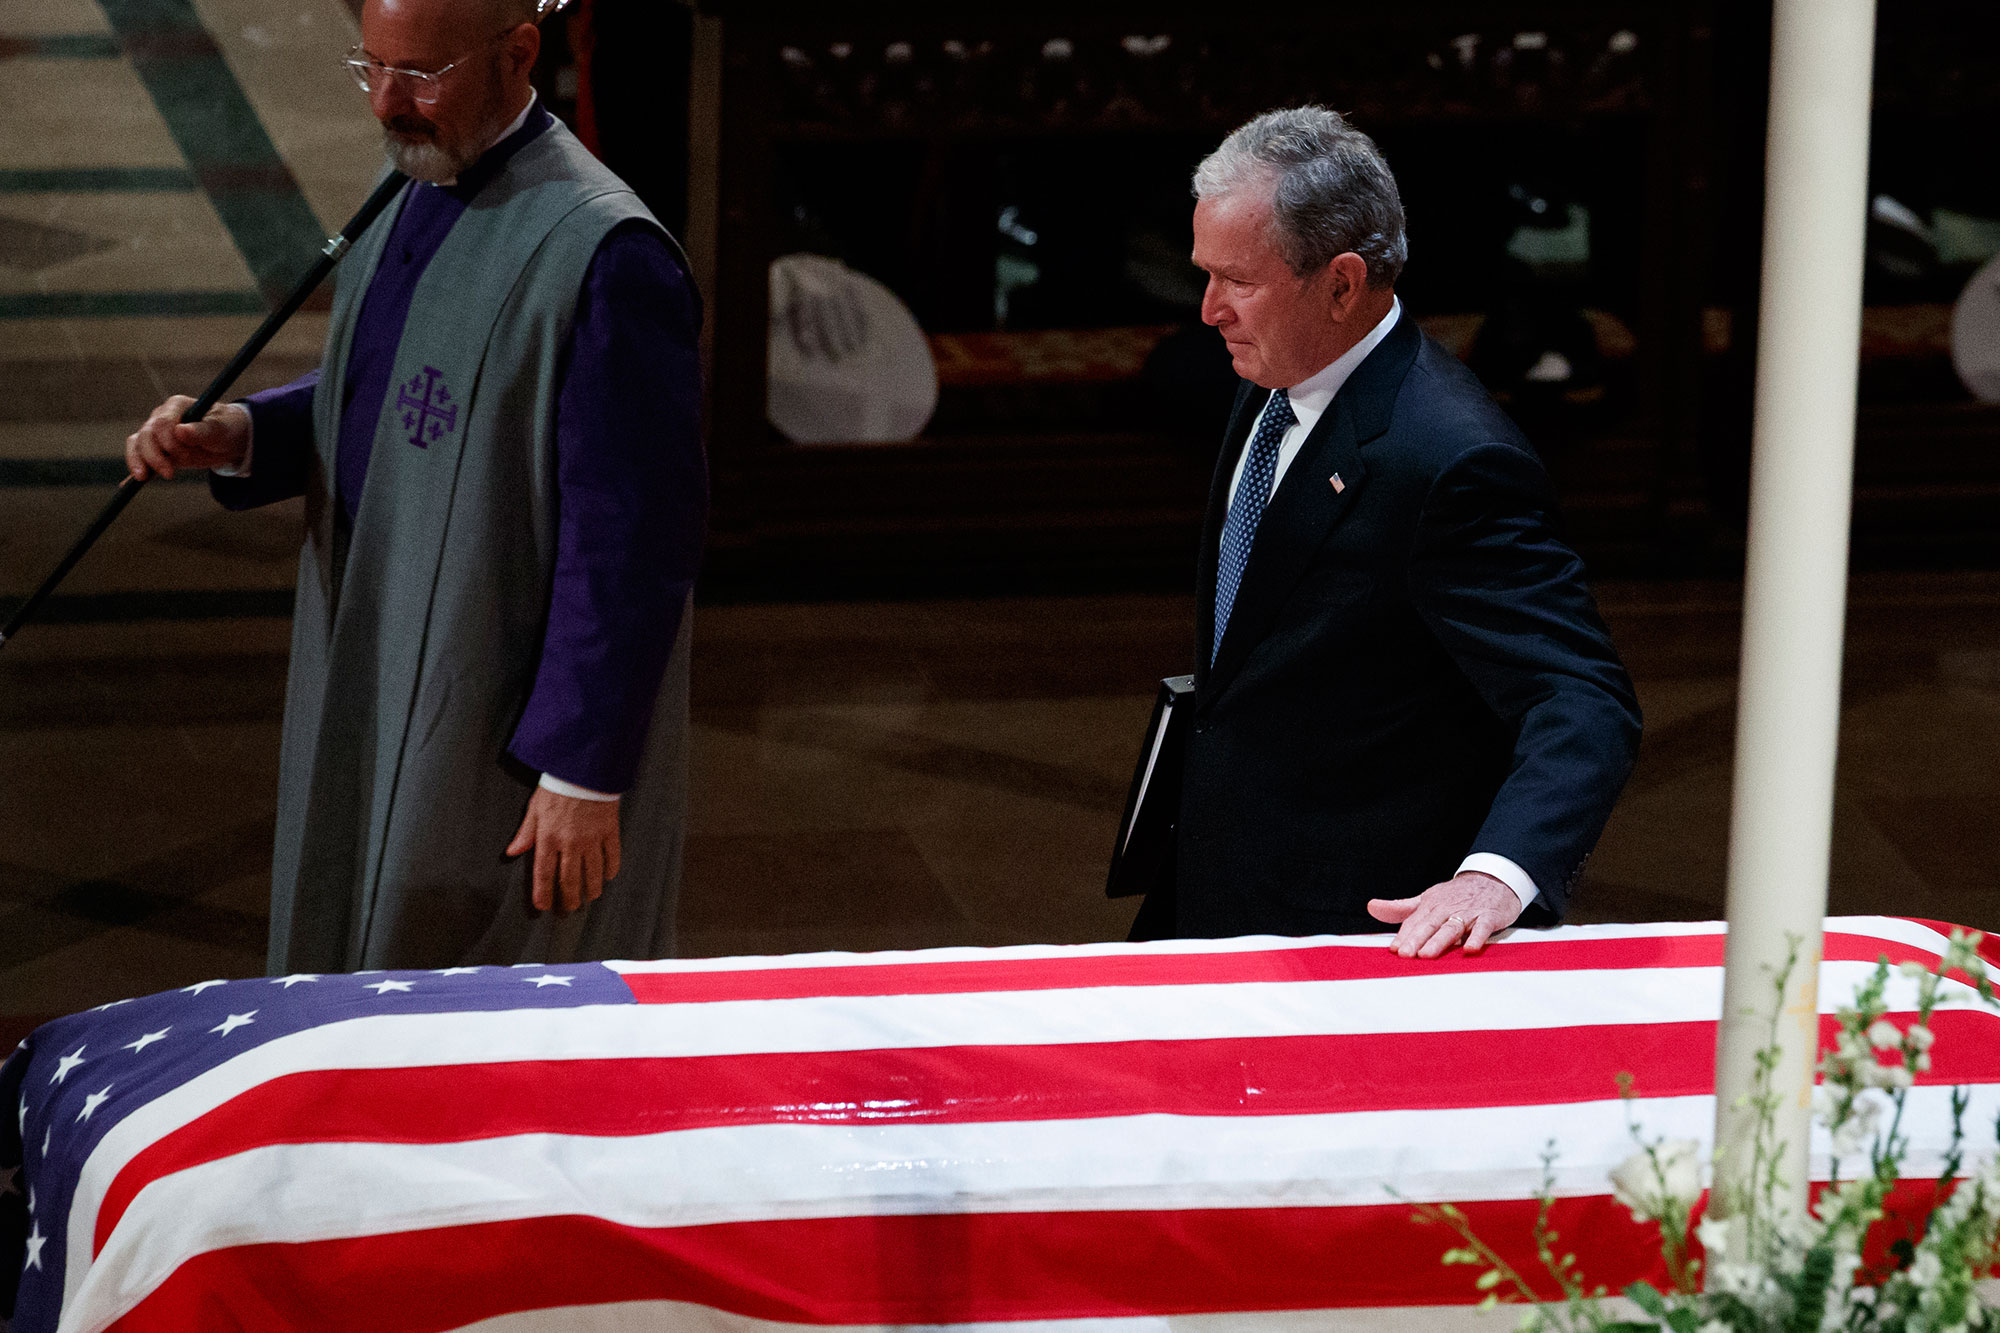 "<div class=""meta image-caption""><div class=""origin-logo origin-image none""><span>none</span></div><span class=""caption-text"">Former President George W. Bush touches his fathers casket after speaking during the State Funeral for former President George H.W. Bush, at the National Cathedral, Wednesday. (Evan Vucci/AP Photo)</span></div>"